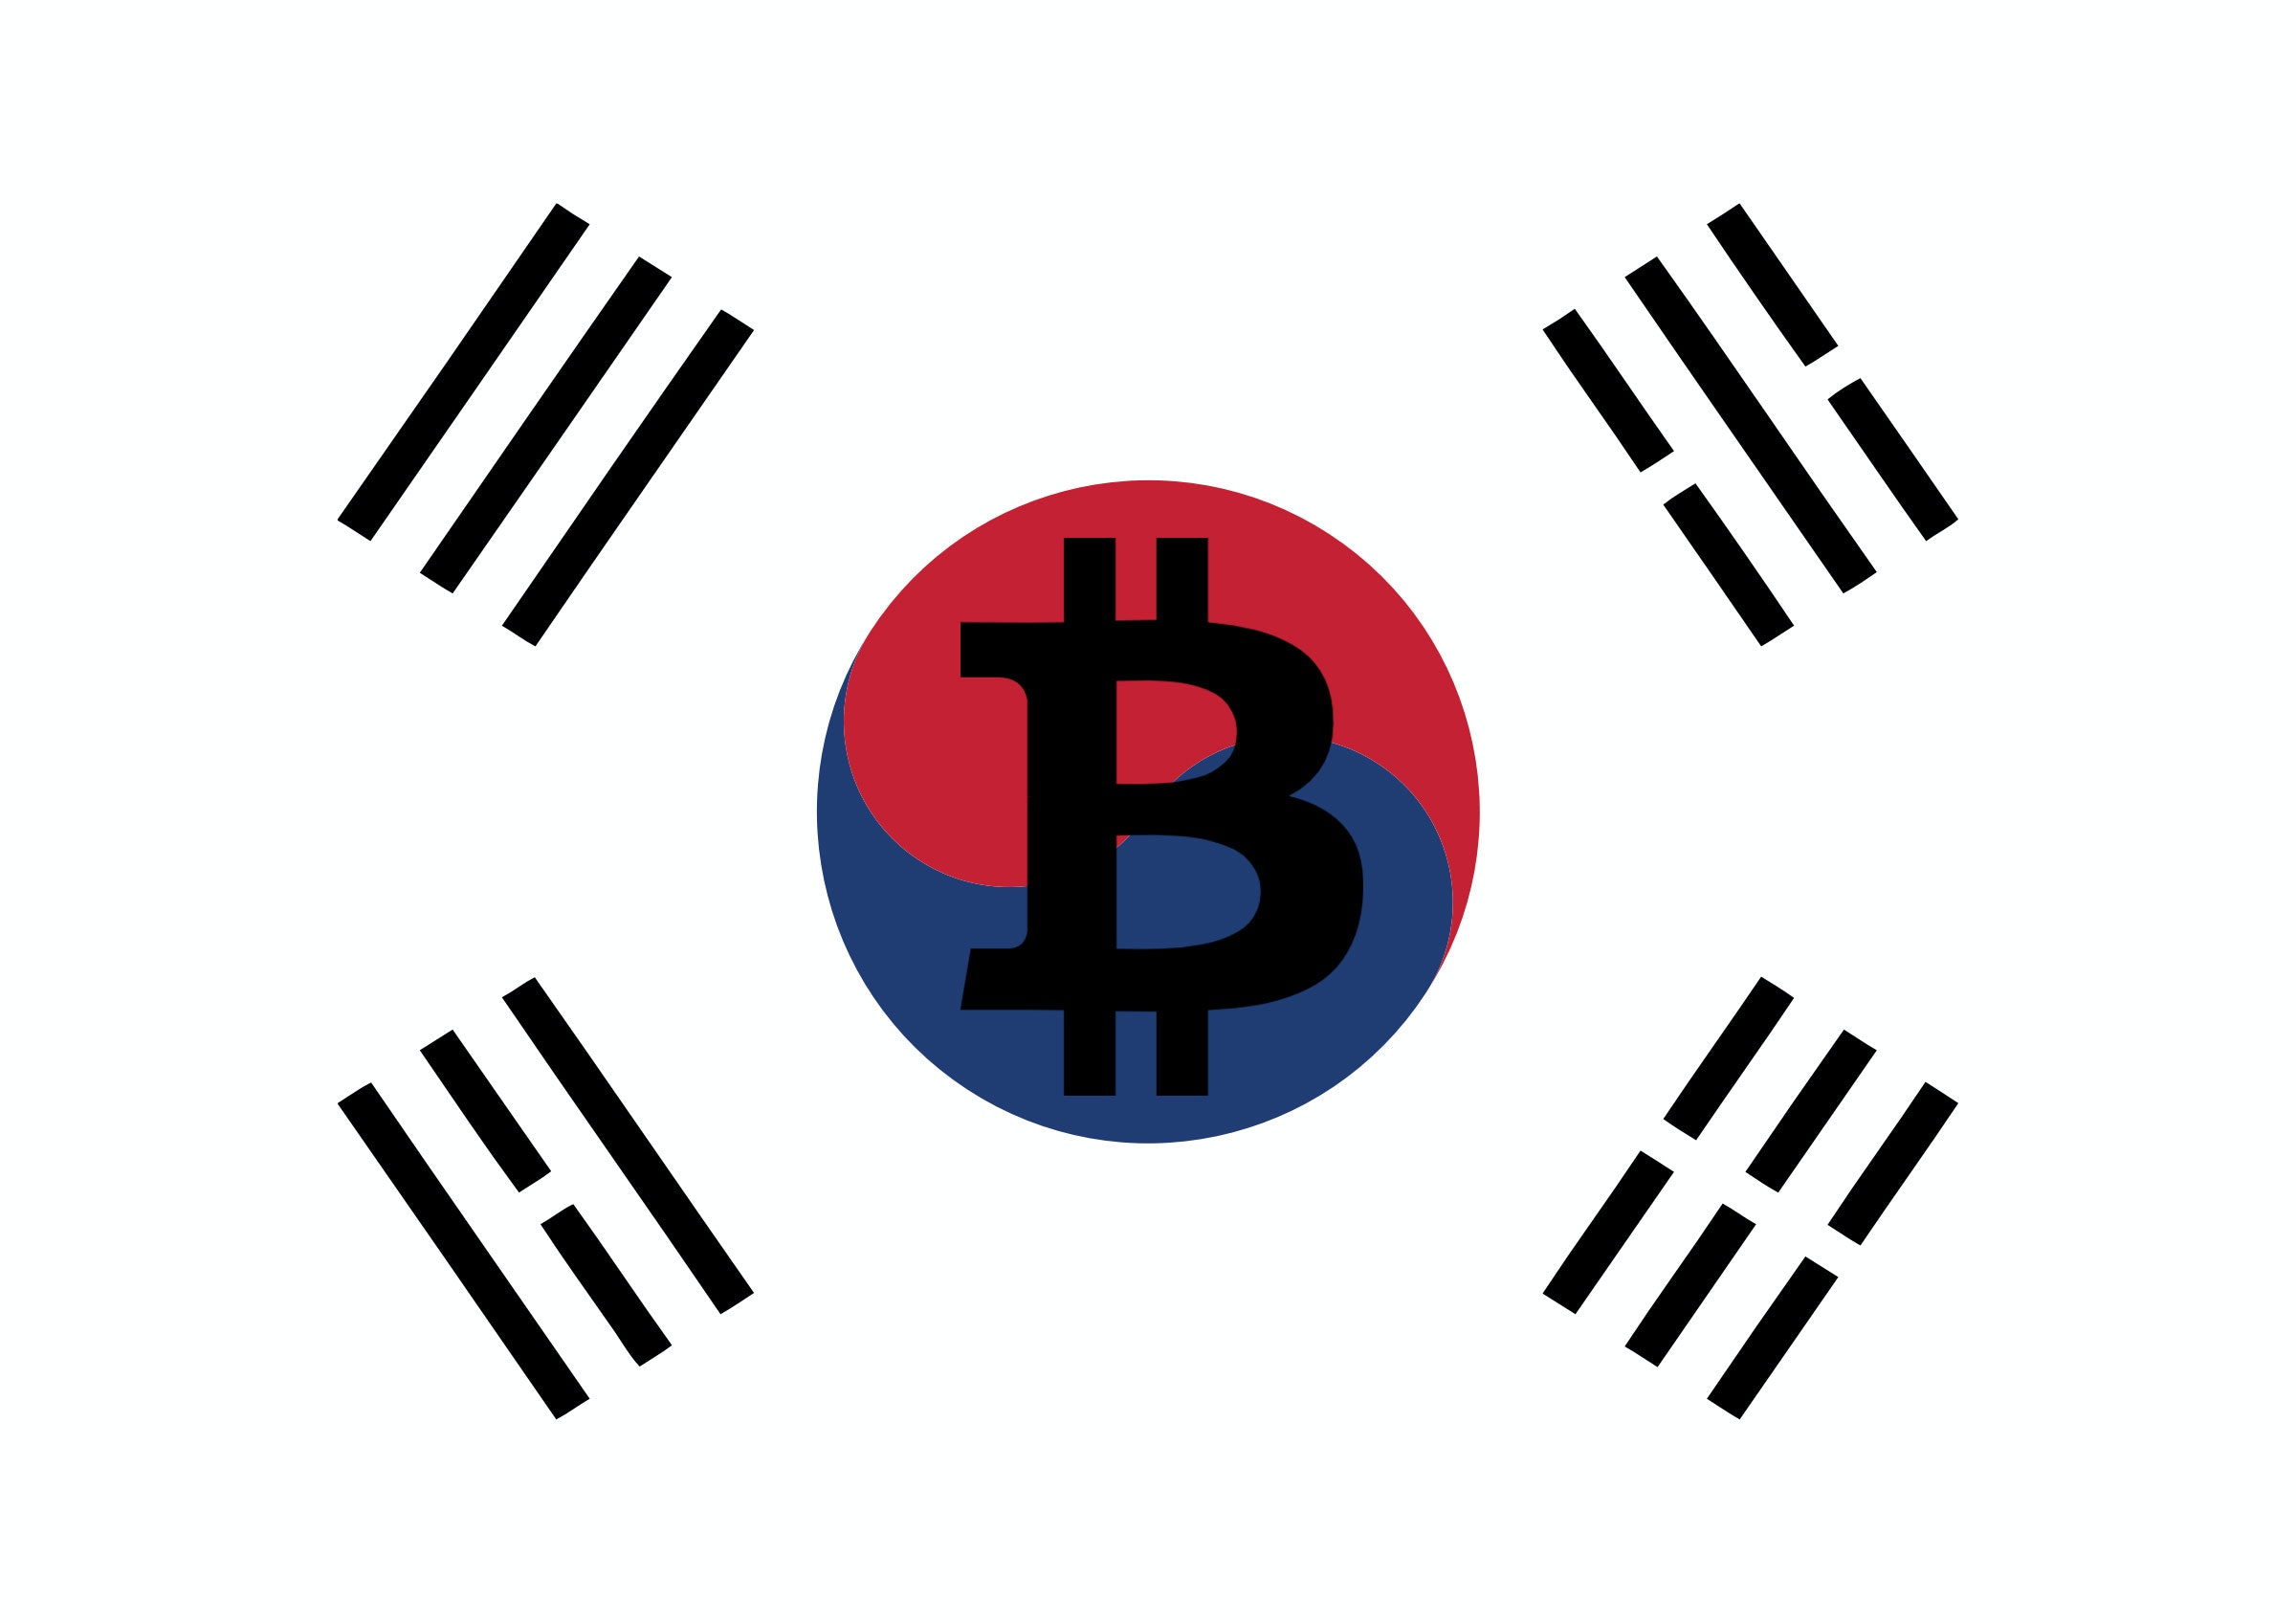 south korea cryptocurrency exchange ban